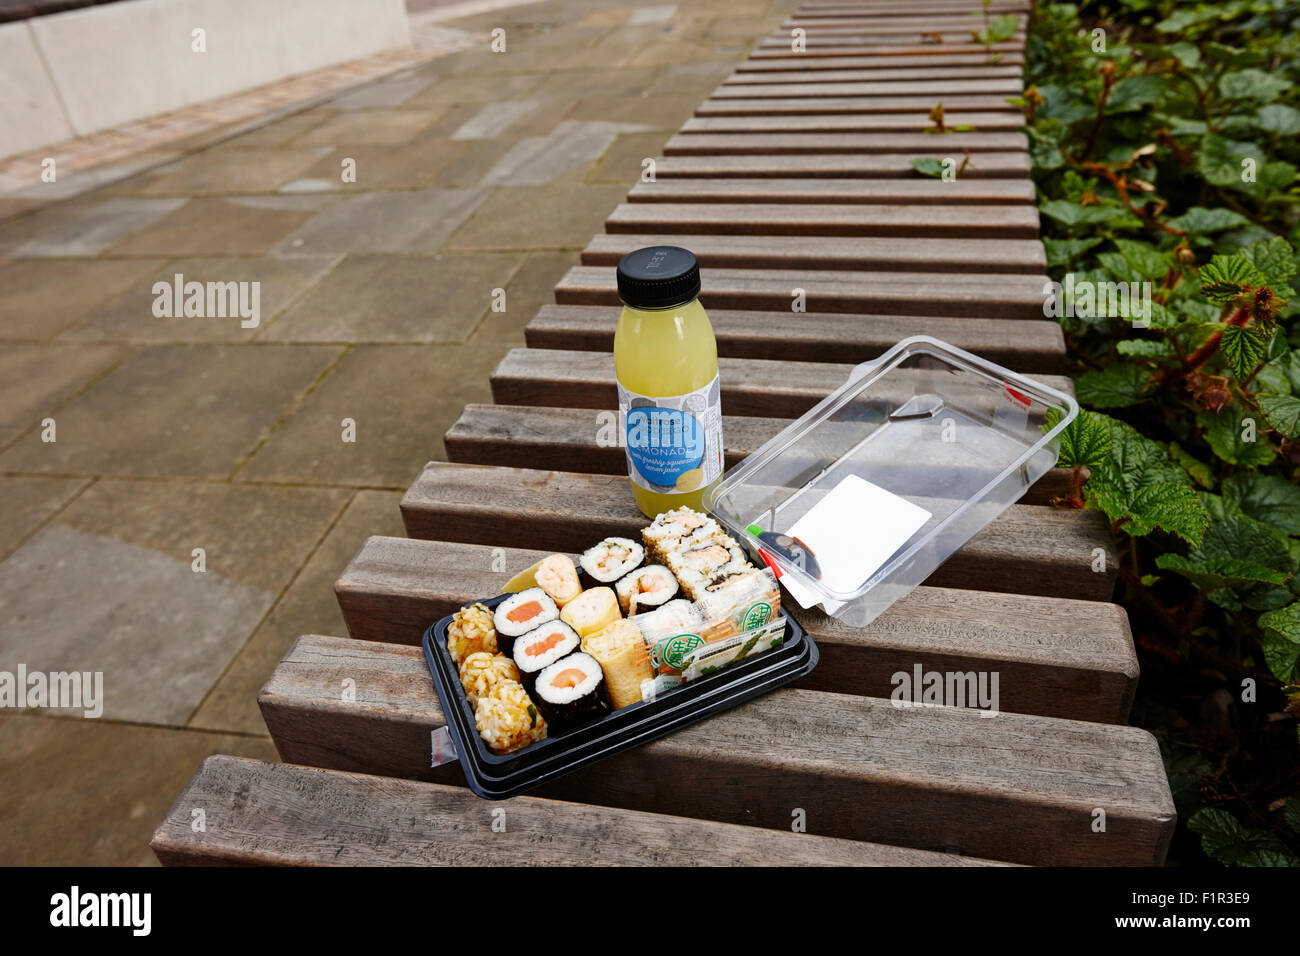 supermarket bought sushi and drink on a park bench Birmingham UK - Stock Image